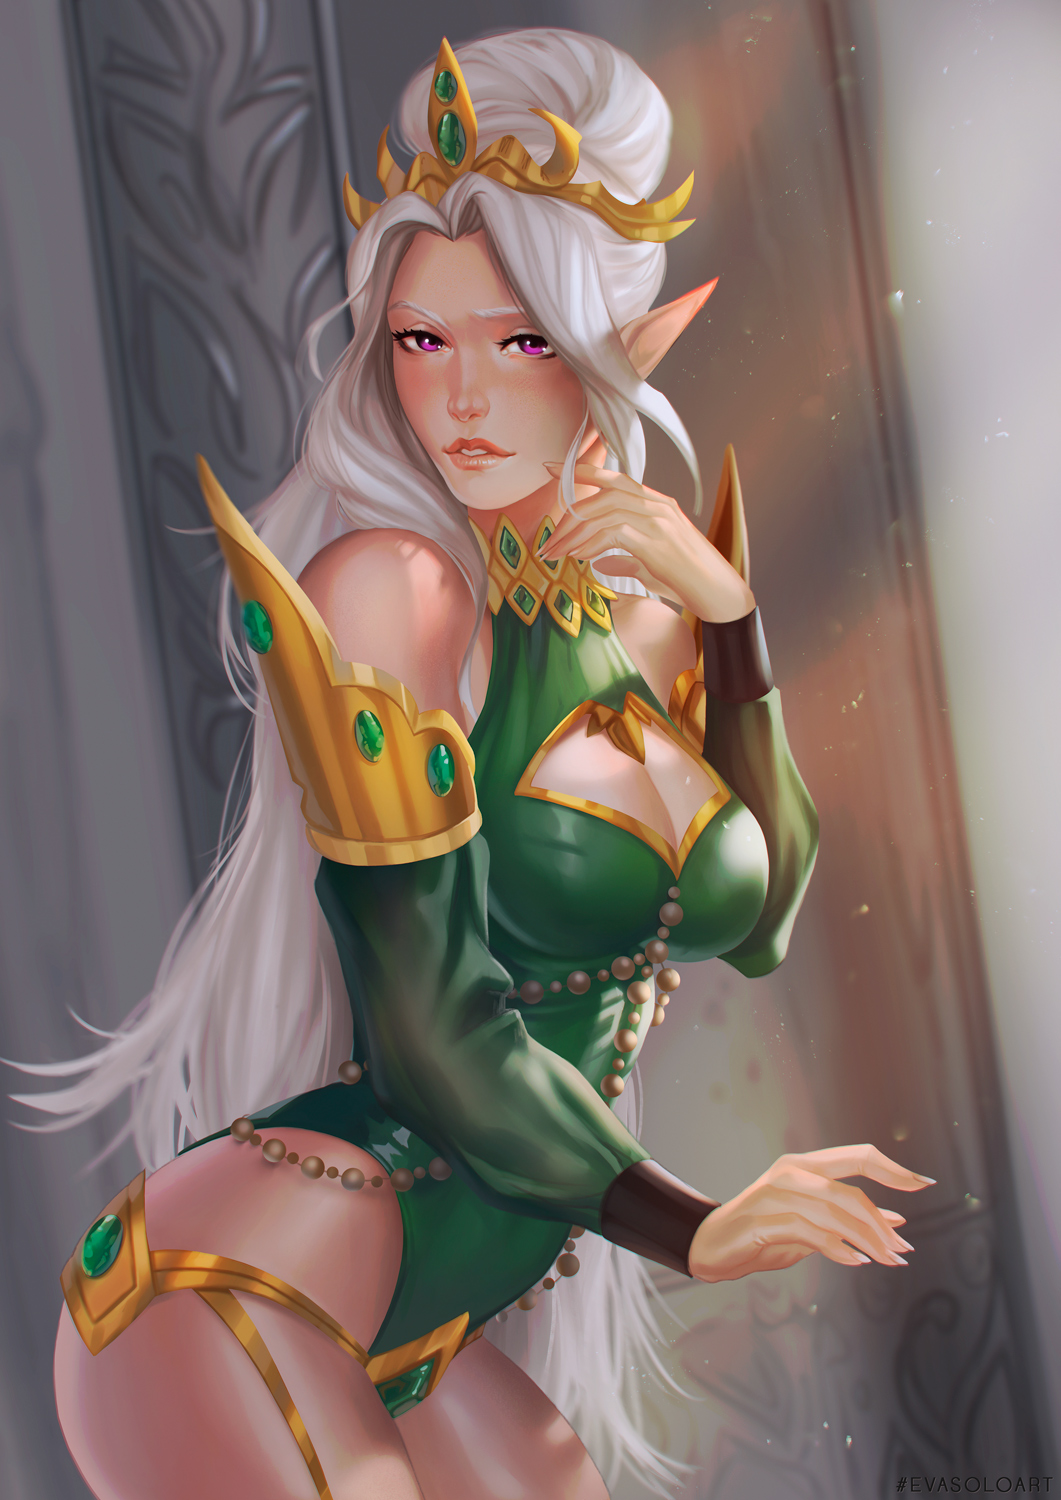 1girl breasts cleavage detached_sleeves dutch_angle elf eva_solo finger_to_cheek green_clothes highres long_hair looking_at_viewer parted_lips pointy_ears princess solo standing updo violet_eyes warcraft white_hair world_of_warcraft yuuleth_lightglade